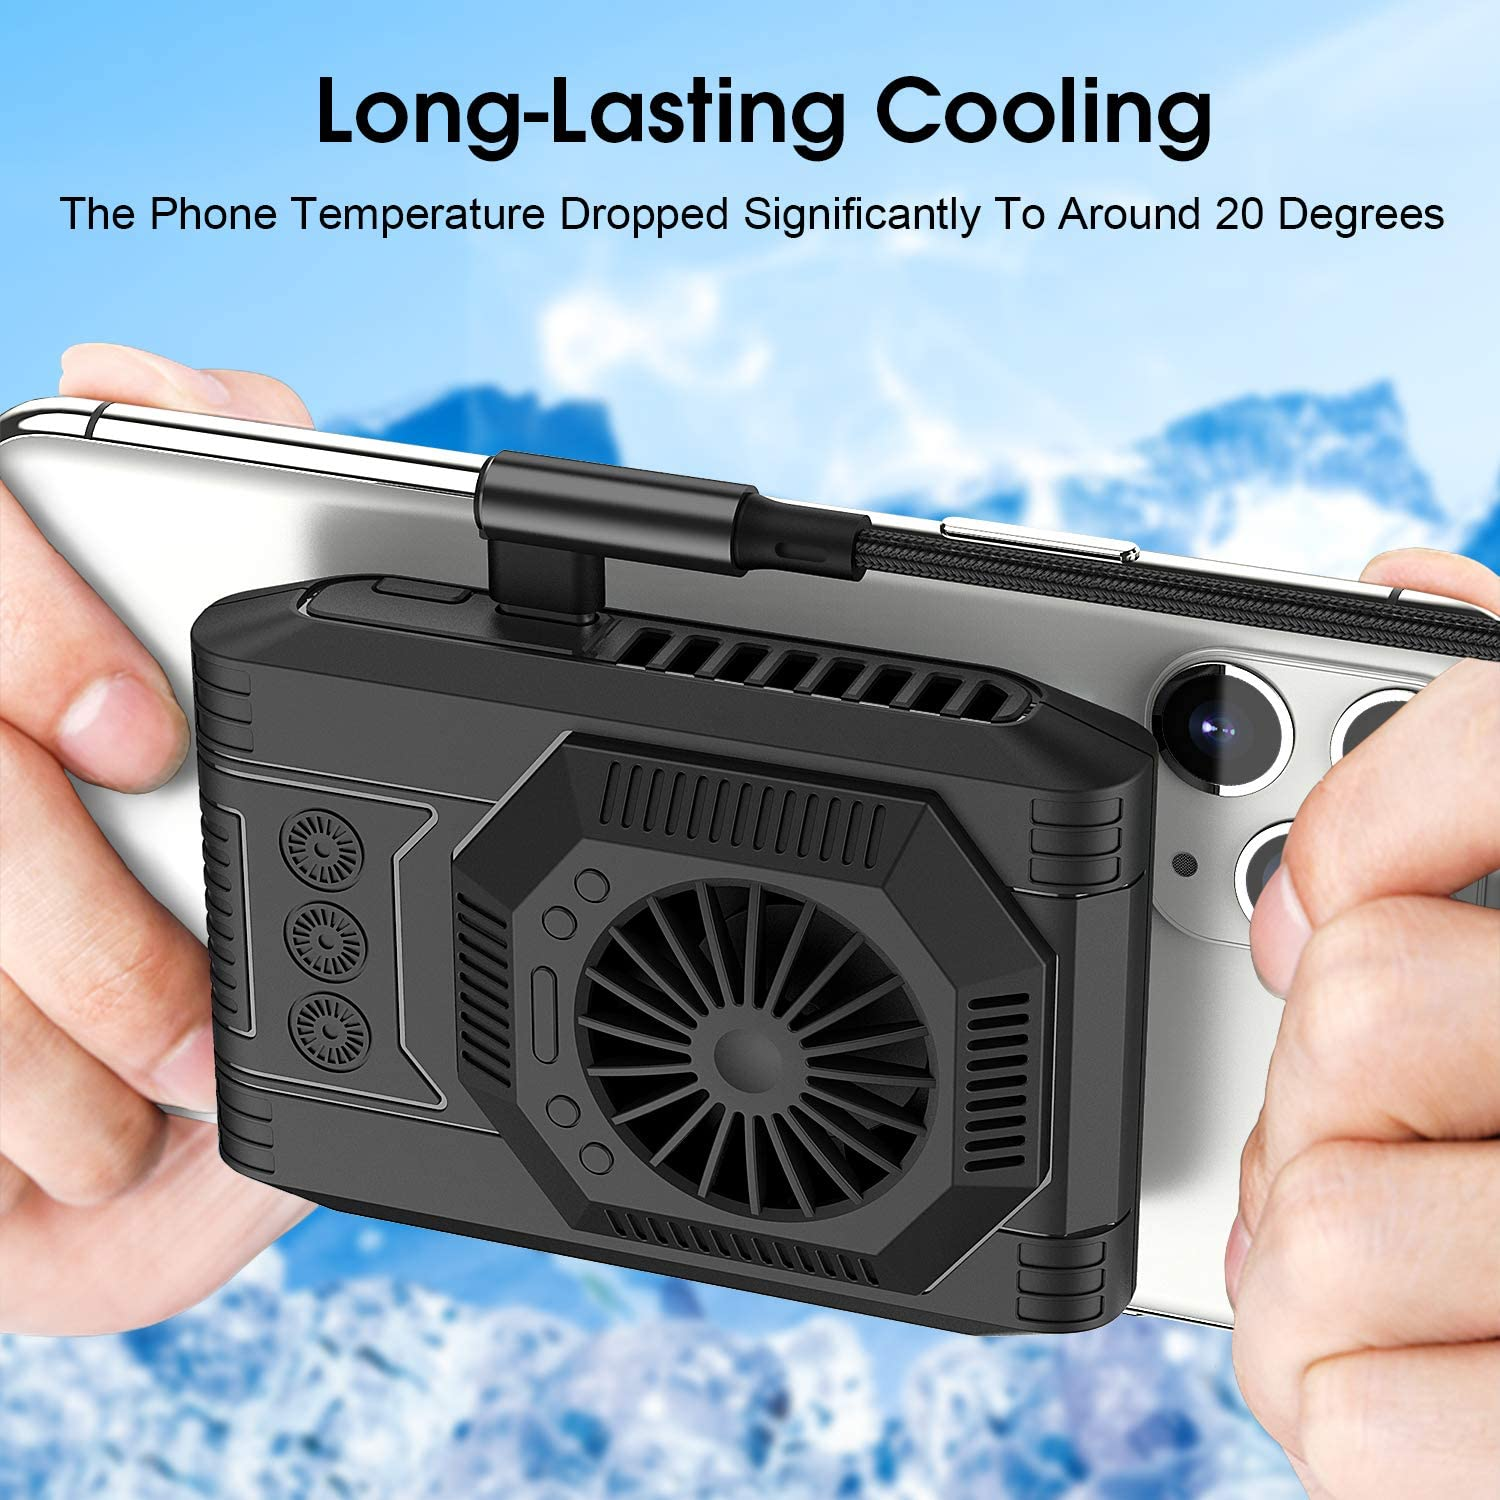 Hinax Phone Silent Cooler, Upgraded Tech Semiconductor Radiator, Cooling 20 in 1min, for PUBG or Fotnite, for Phone 11 Pro Xs Max XR X 8 7 6 6s Samsung Galaxy S10 S9 S8 Plus